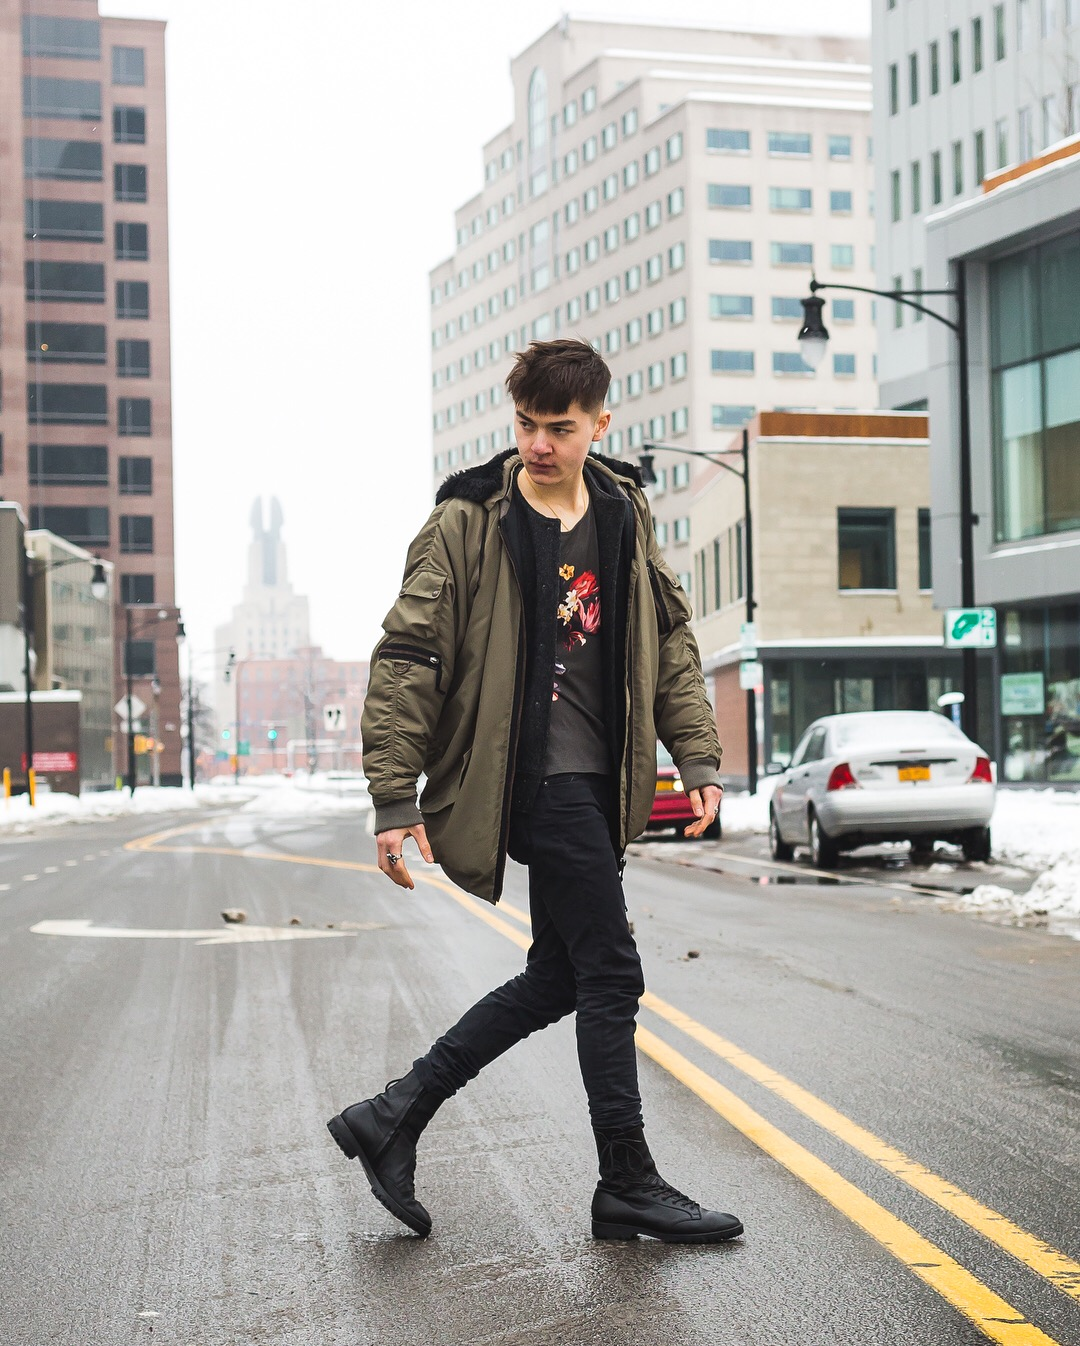 Wearing:   Acne Studios Hydra Bomber  Acne Studios T-Shirt  Acne Studios Denim  Yohji Yamamoto Boots  Photo by Adam Zarowny